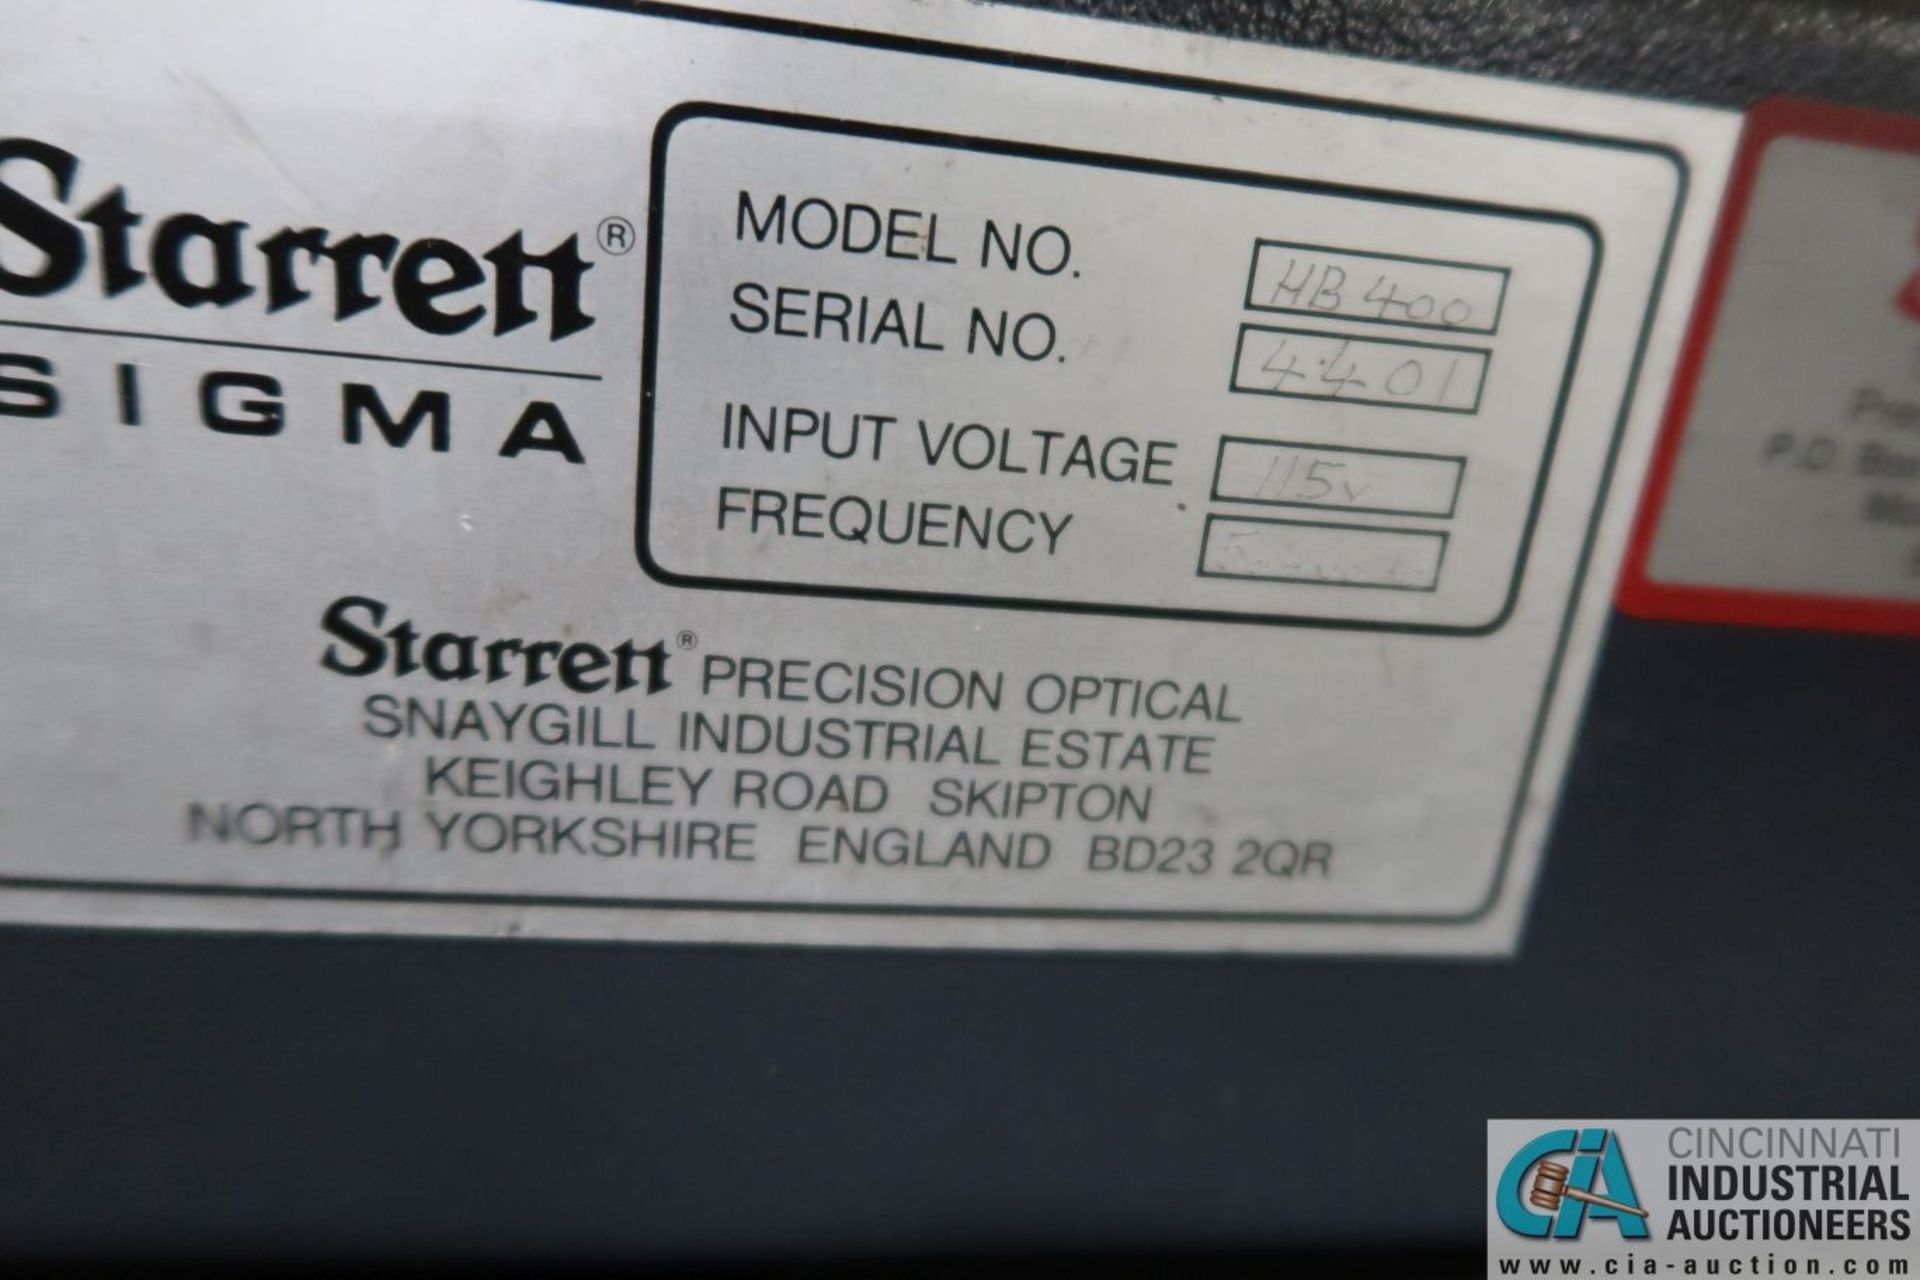 """16"""" DIAMETER STARRETT SIGMA HB-4000 BENCH MOUNTED OPTICAL COMPARATOR; S/N 4401, WITH QUADRA-CHEK - Image 6 of 6"""